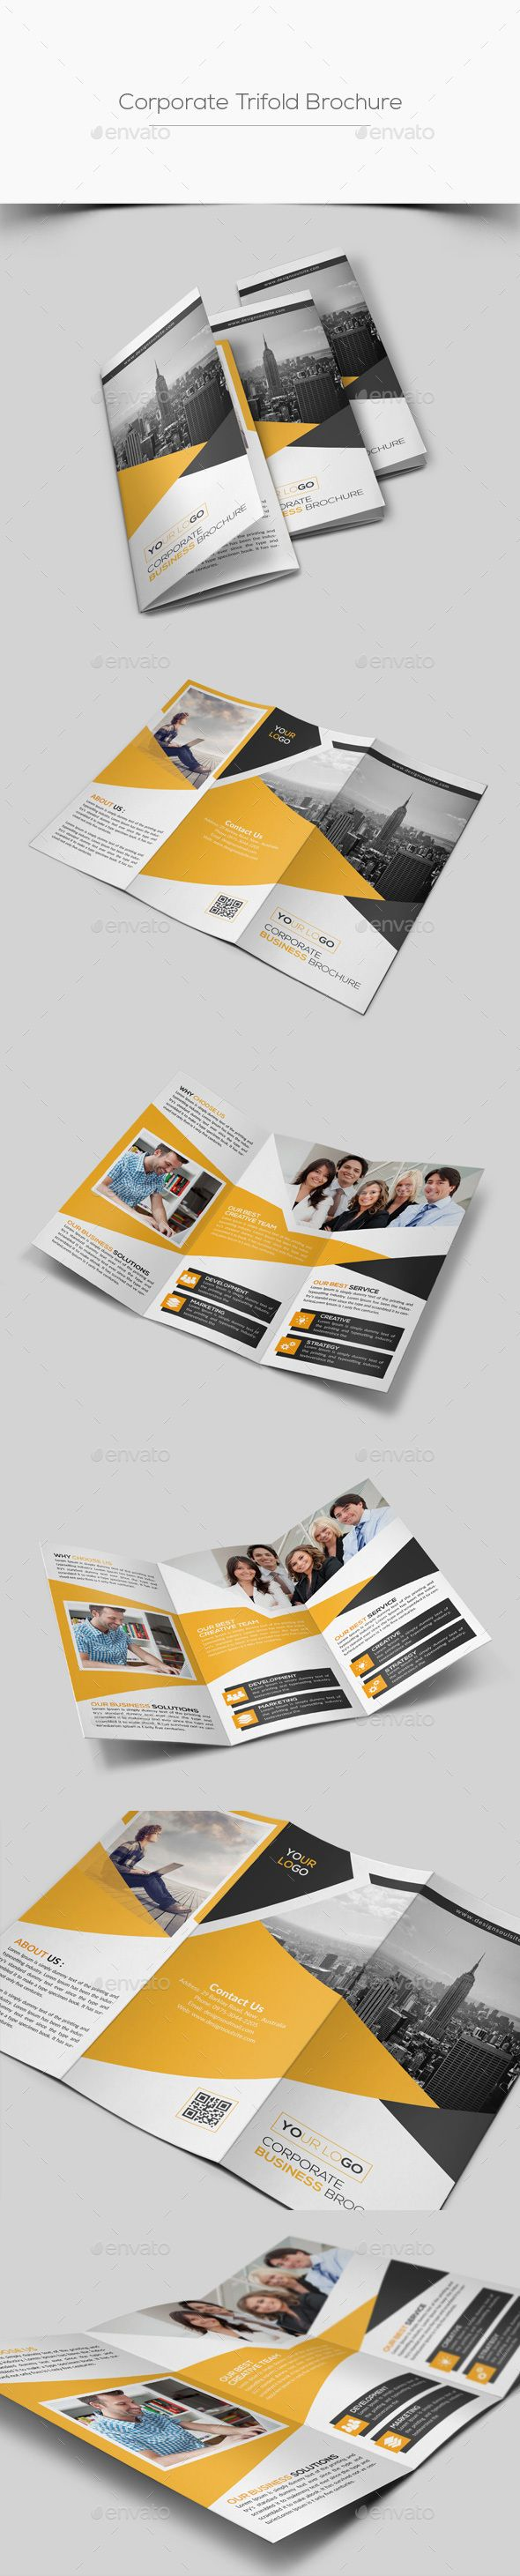 corporate trifold brochure by designsoul14 adobe photoshop cs5 fully layered psd files easy customizable and editable easy to use your own photossmart